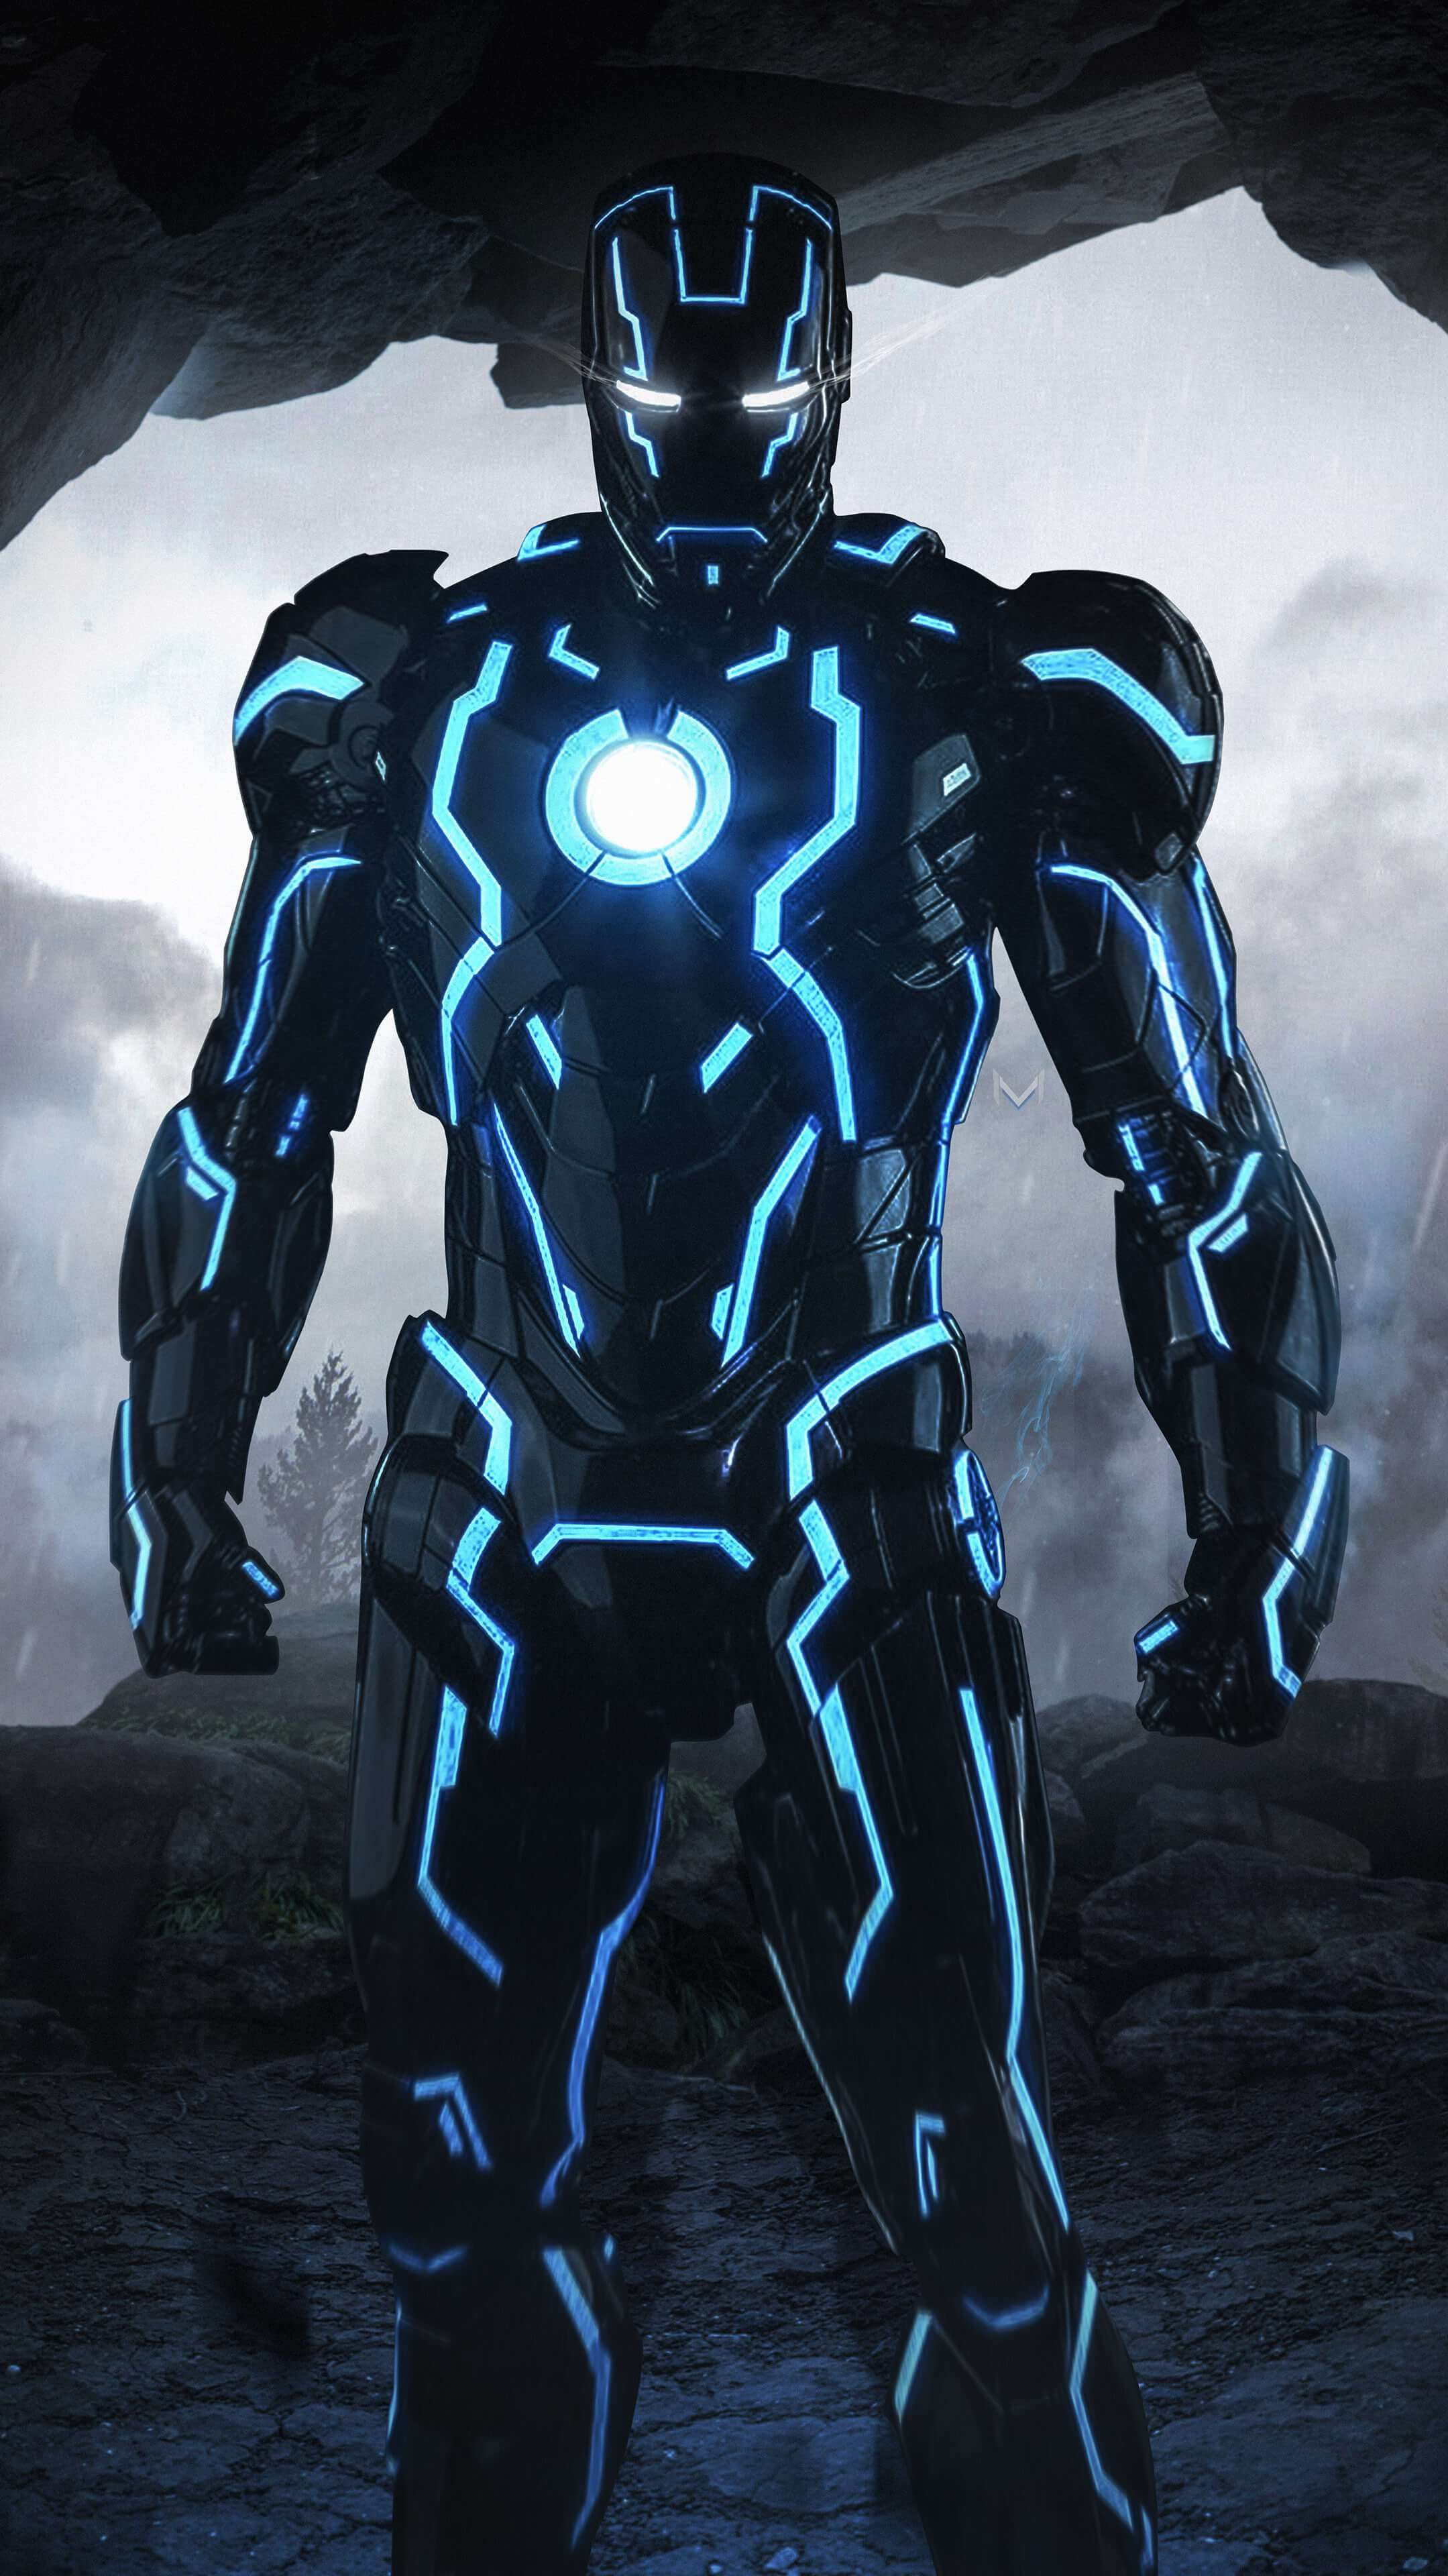 Iron Man Neon Suit Iphone Wallpaper Iron Man Pinterest Iron